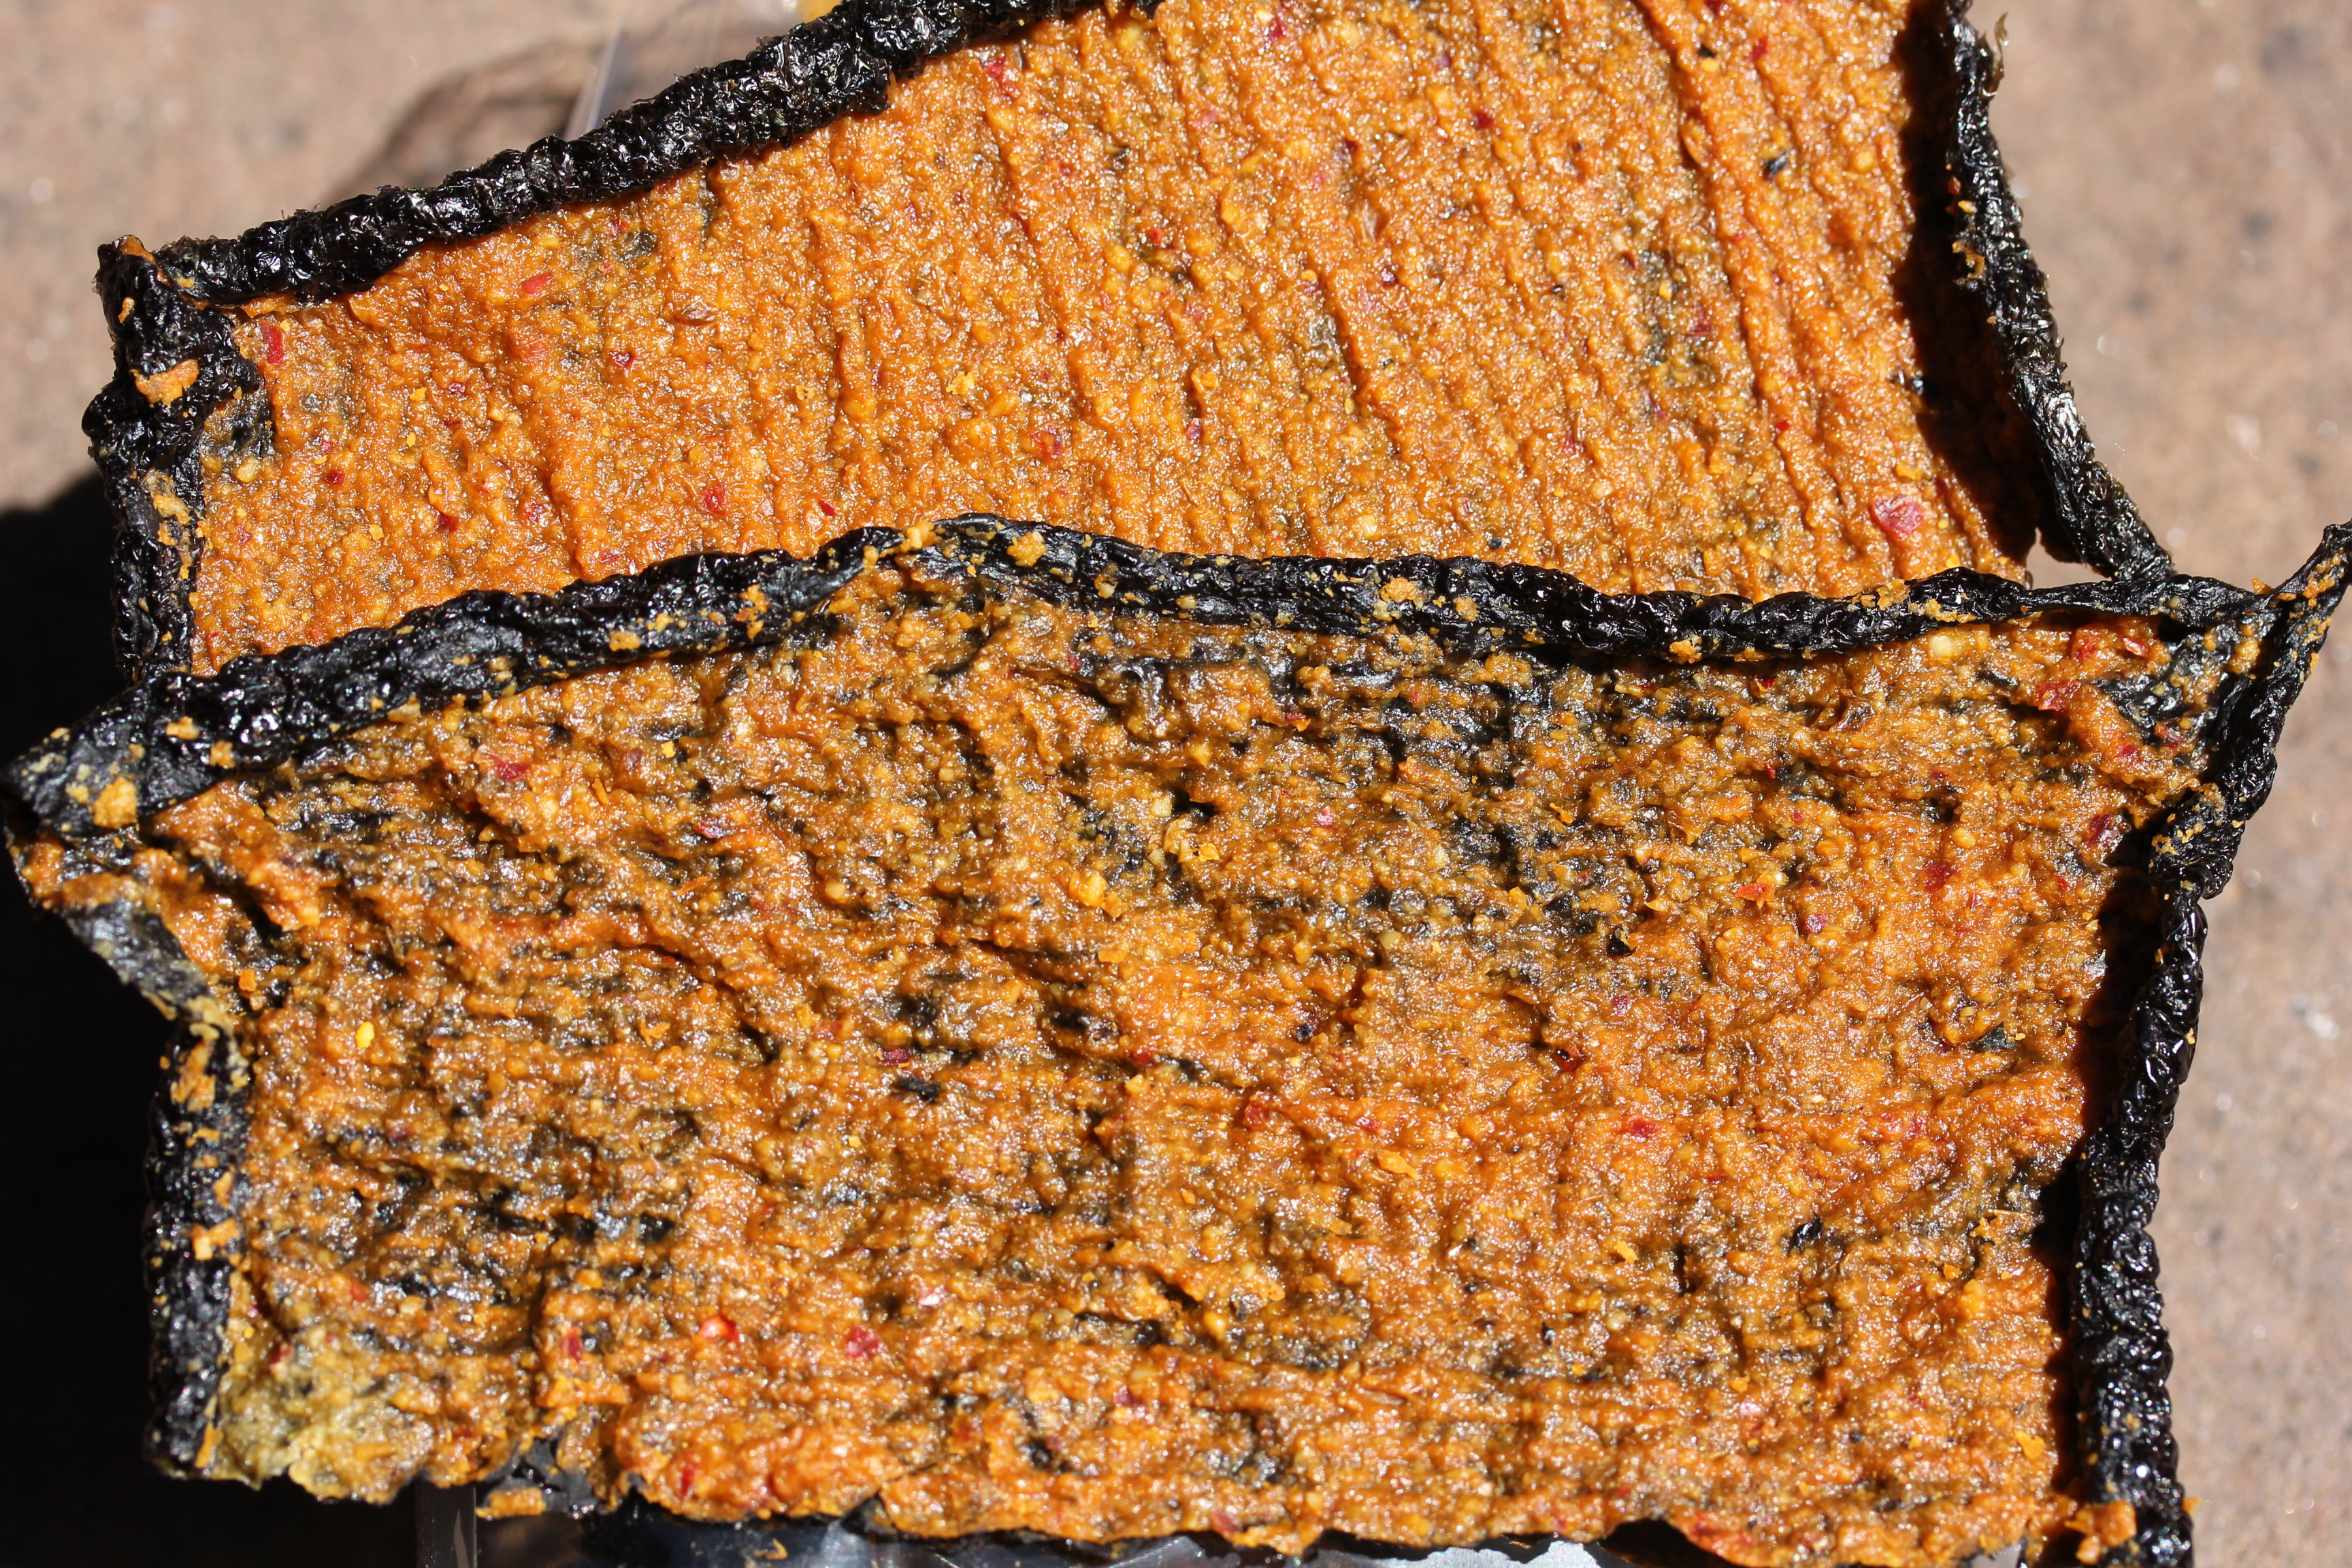 Spicy Nori Bites Closeup